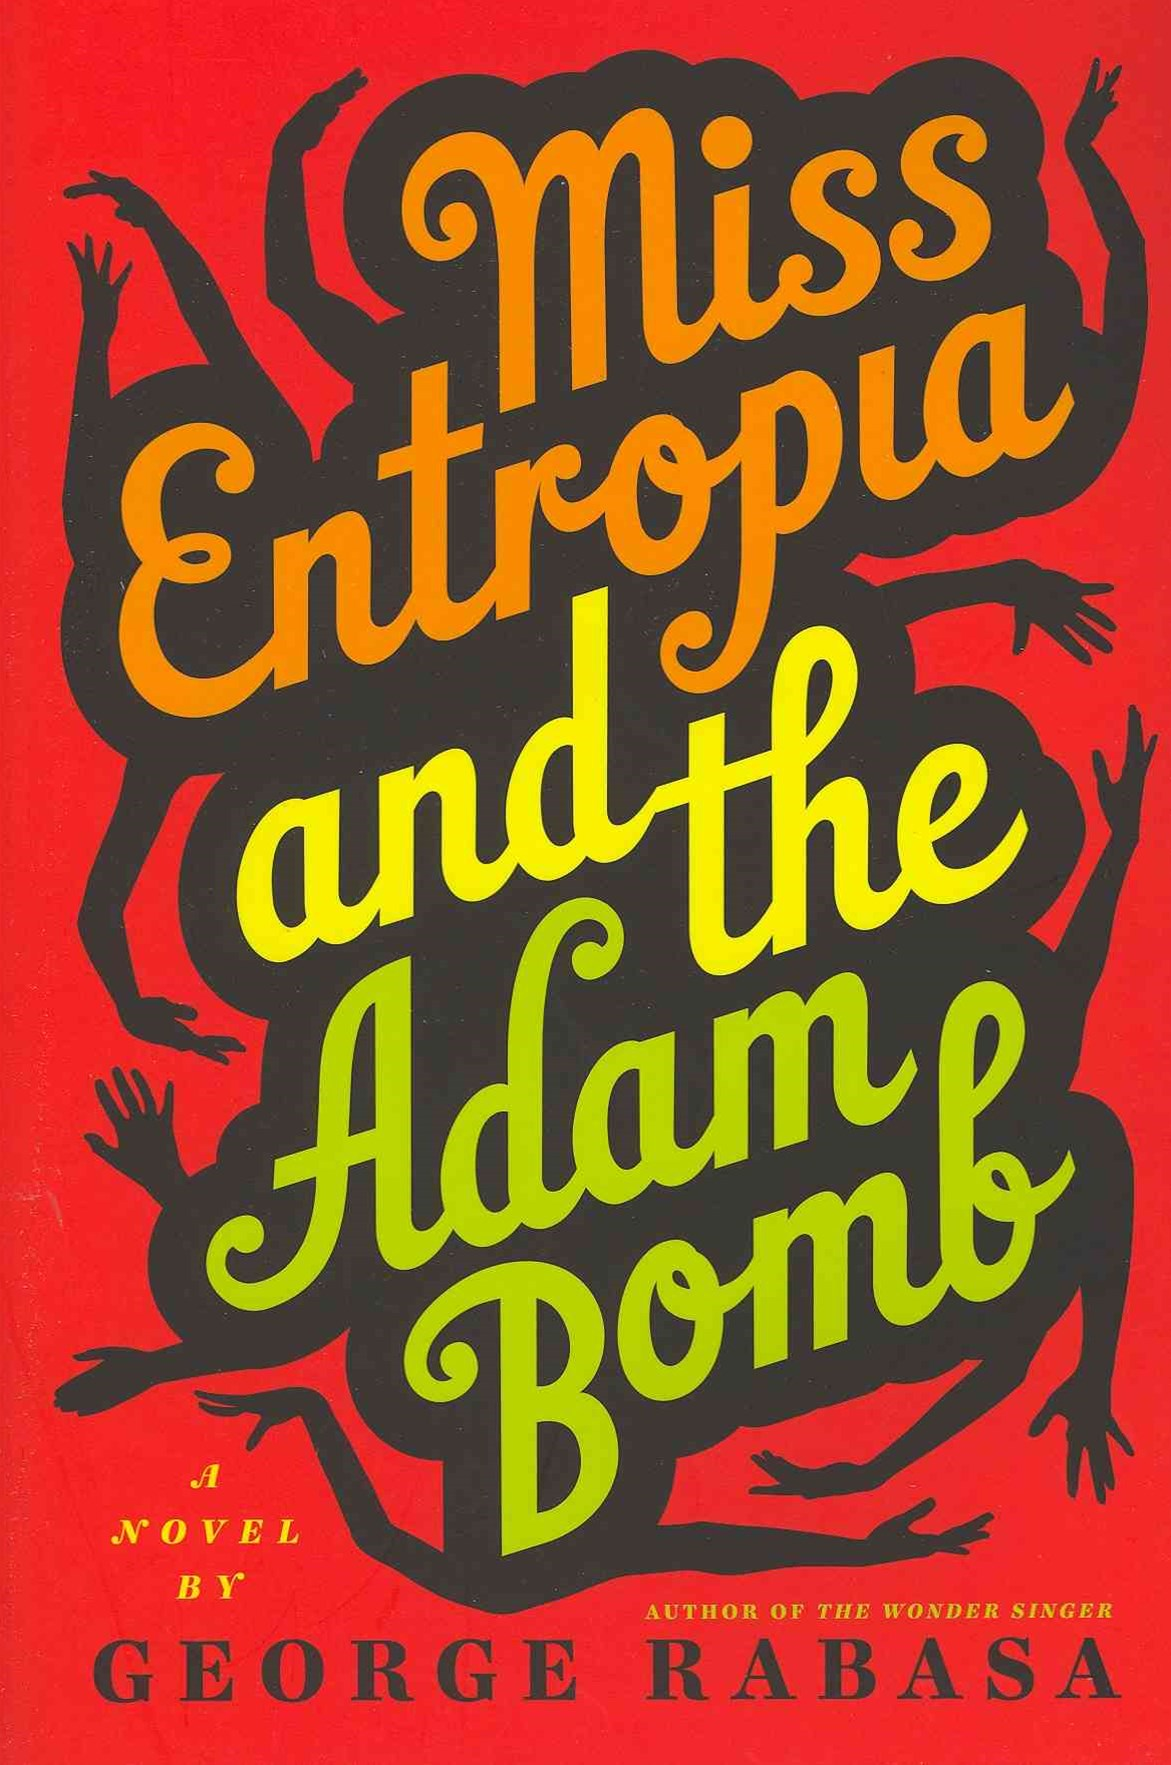 Miss Entropia and the Adam Bomb